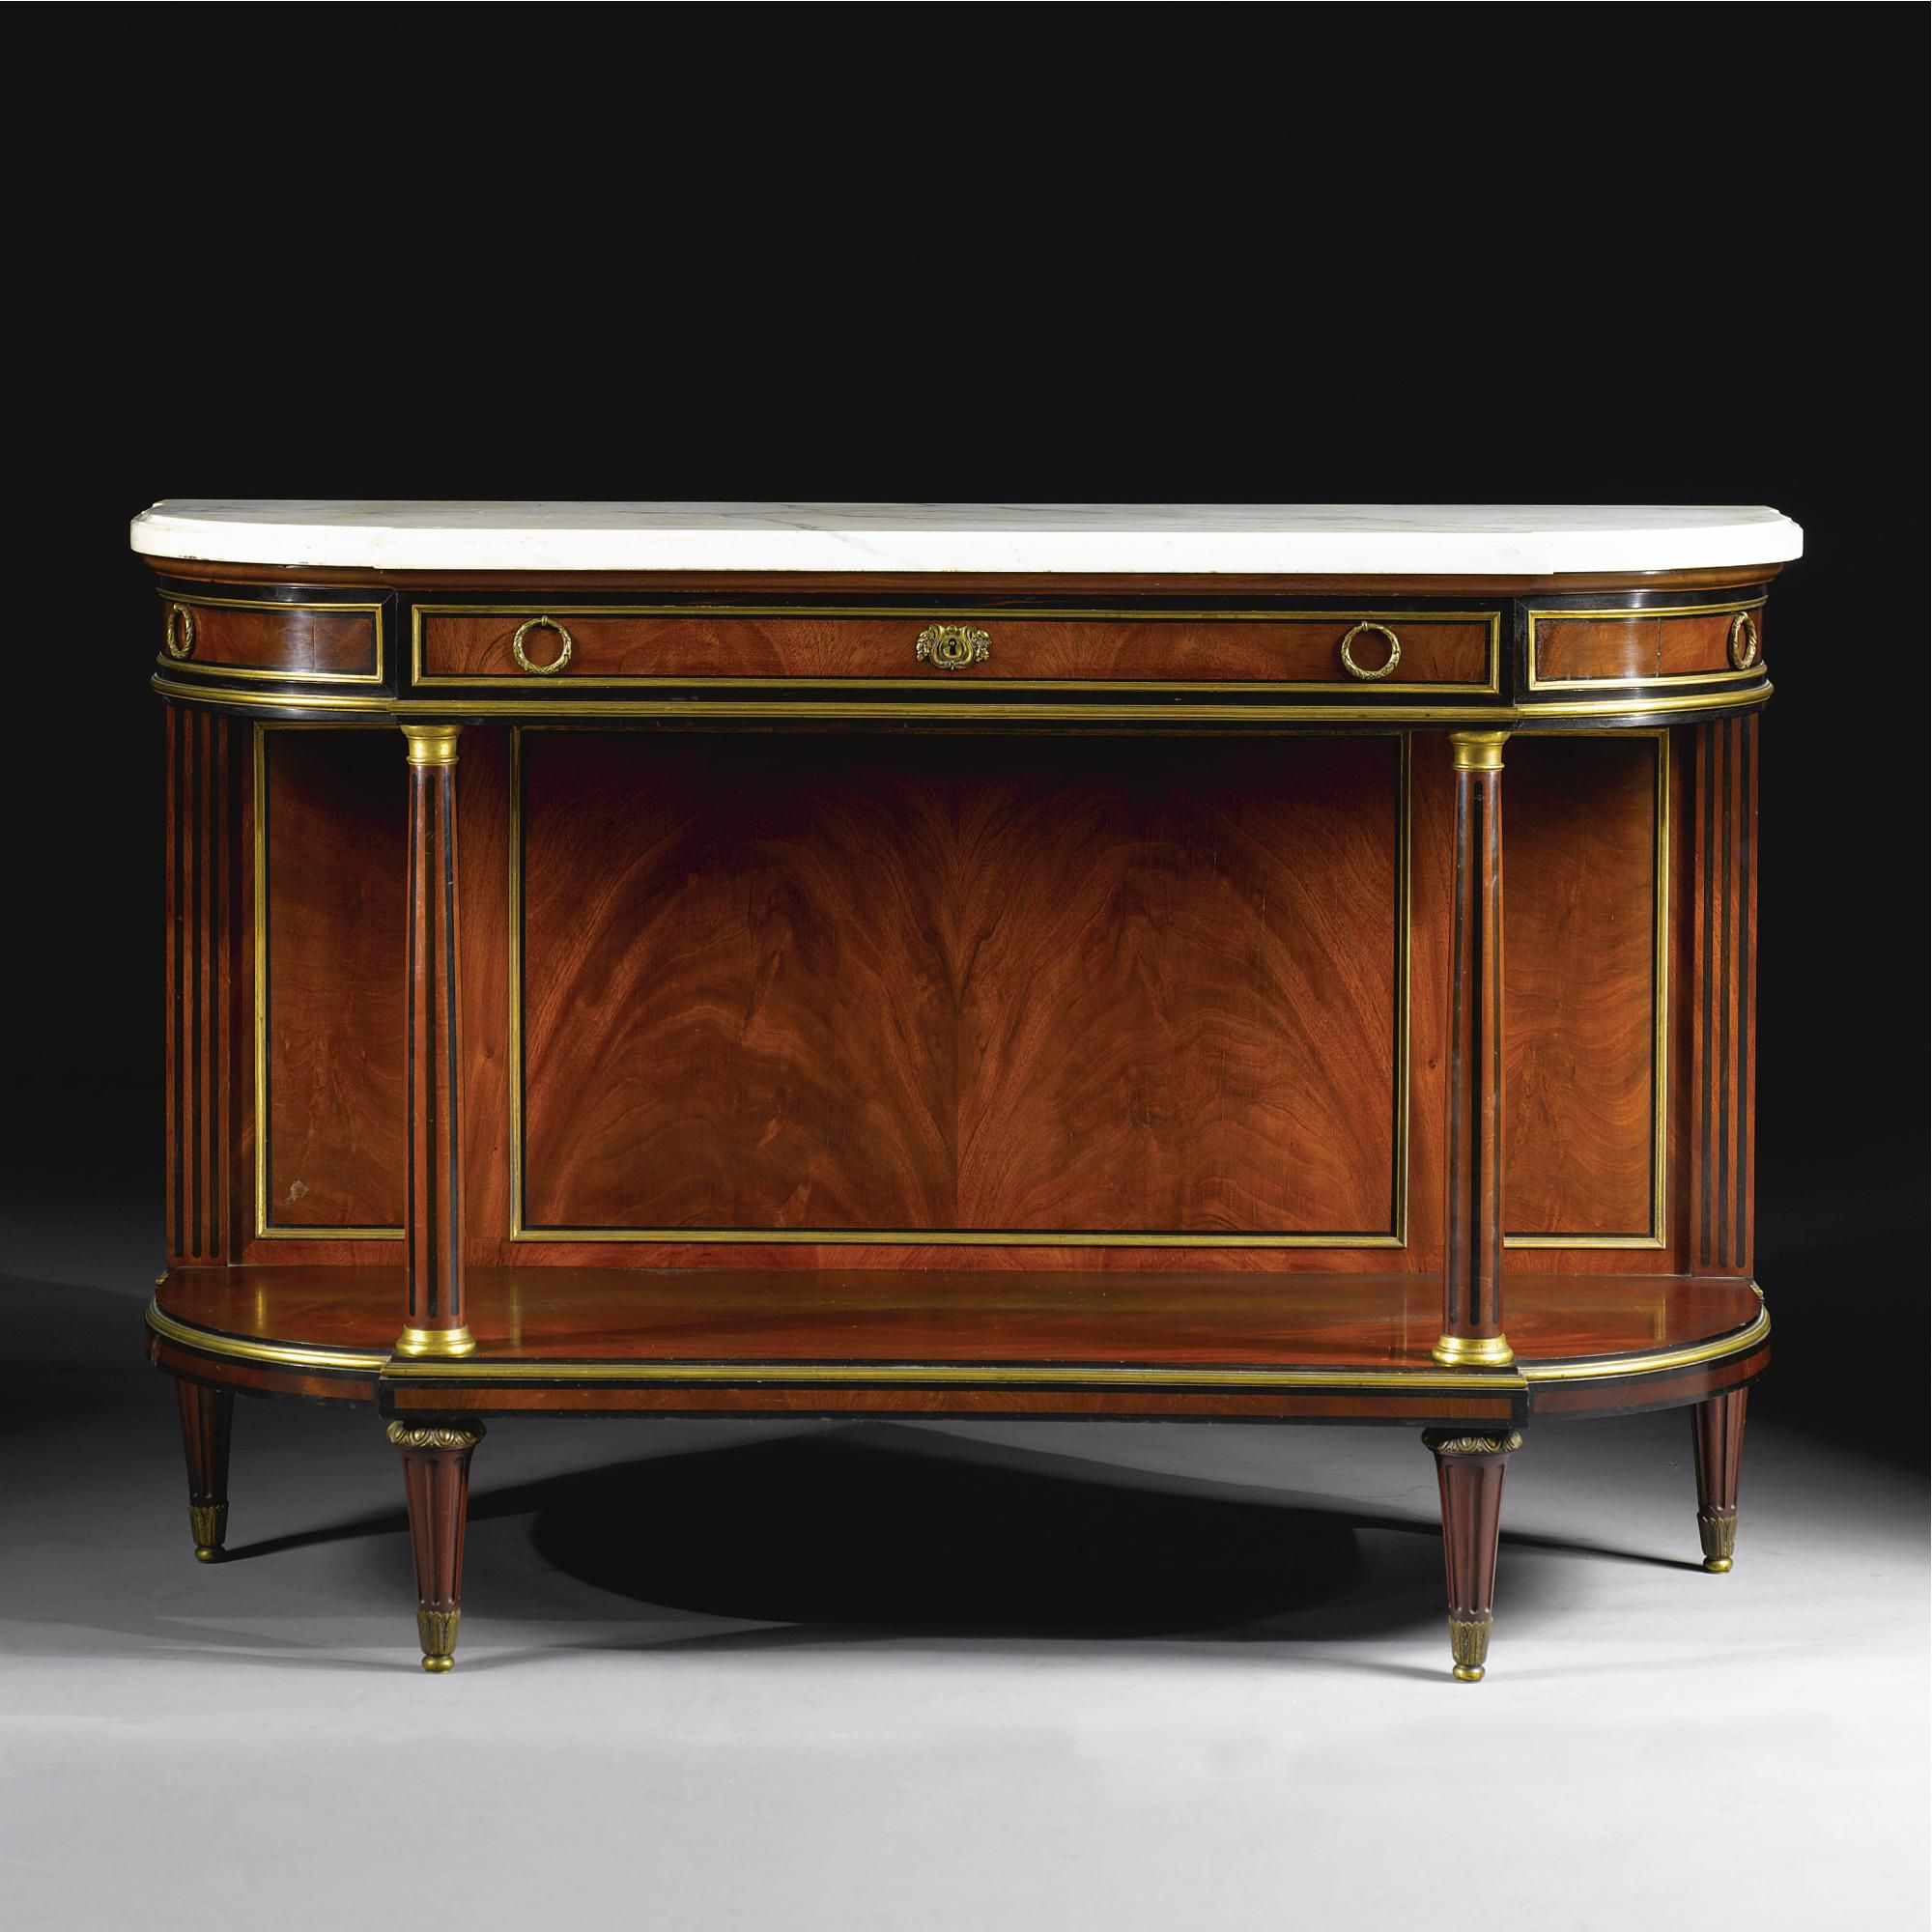 Attributed To Maison Krieger Br Fl 1826 1900 Br A Fine Louis Xvi Style Mahogany And Ebony Console Br P Paris Cir Century Furniture Louis Xvi Style Louis Xvi